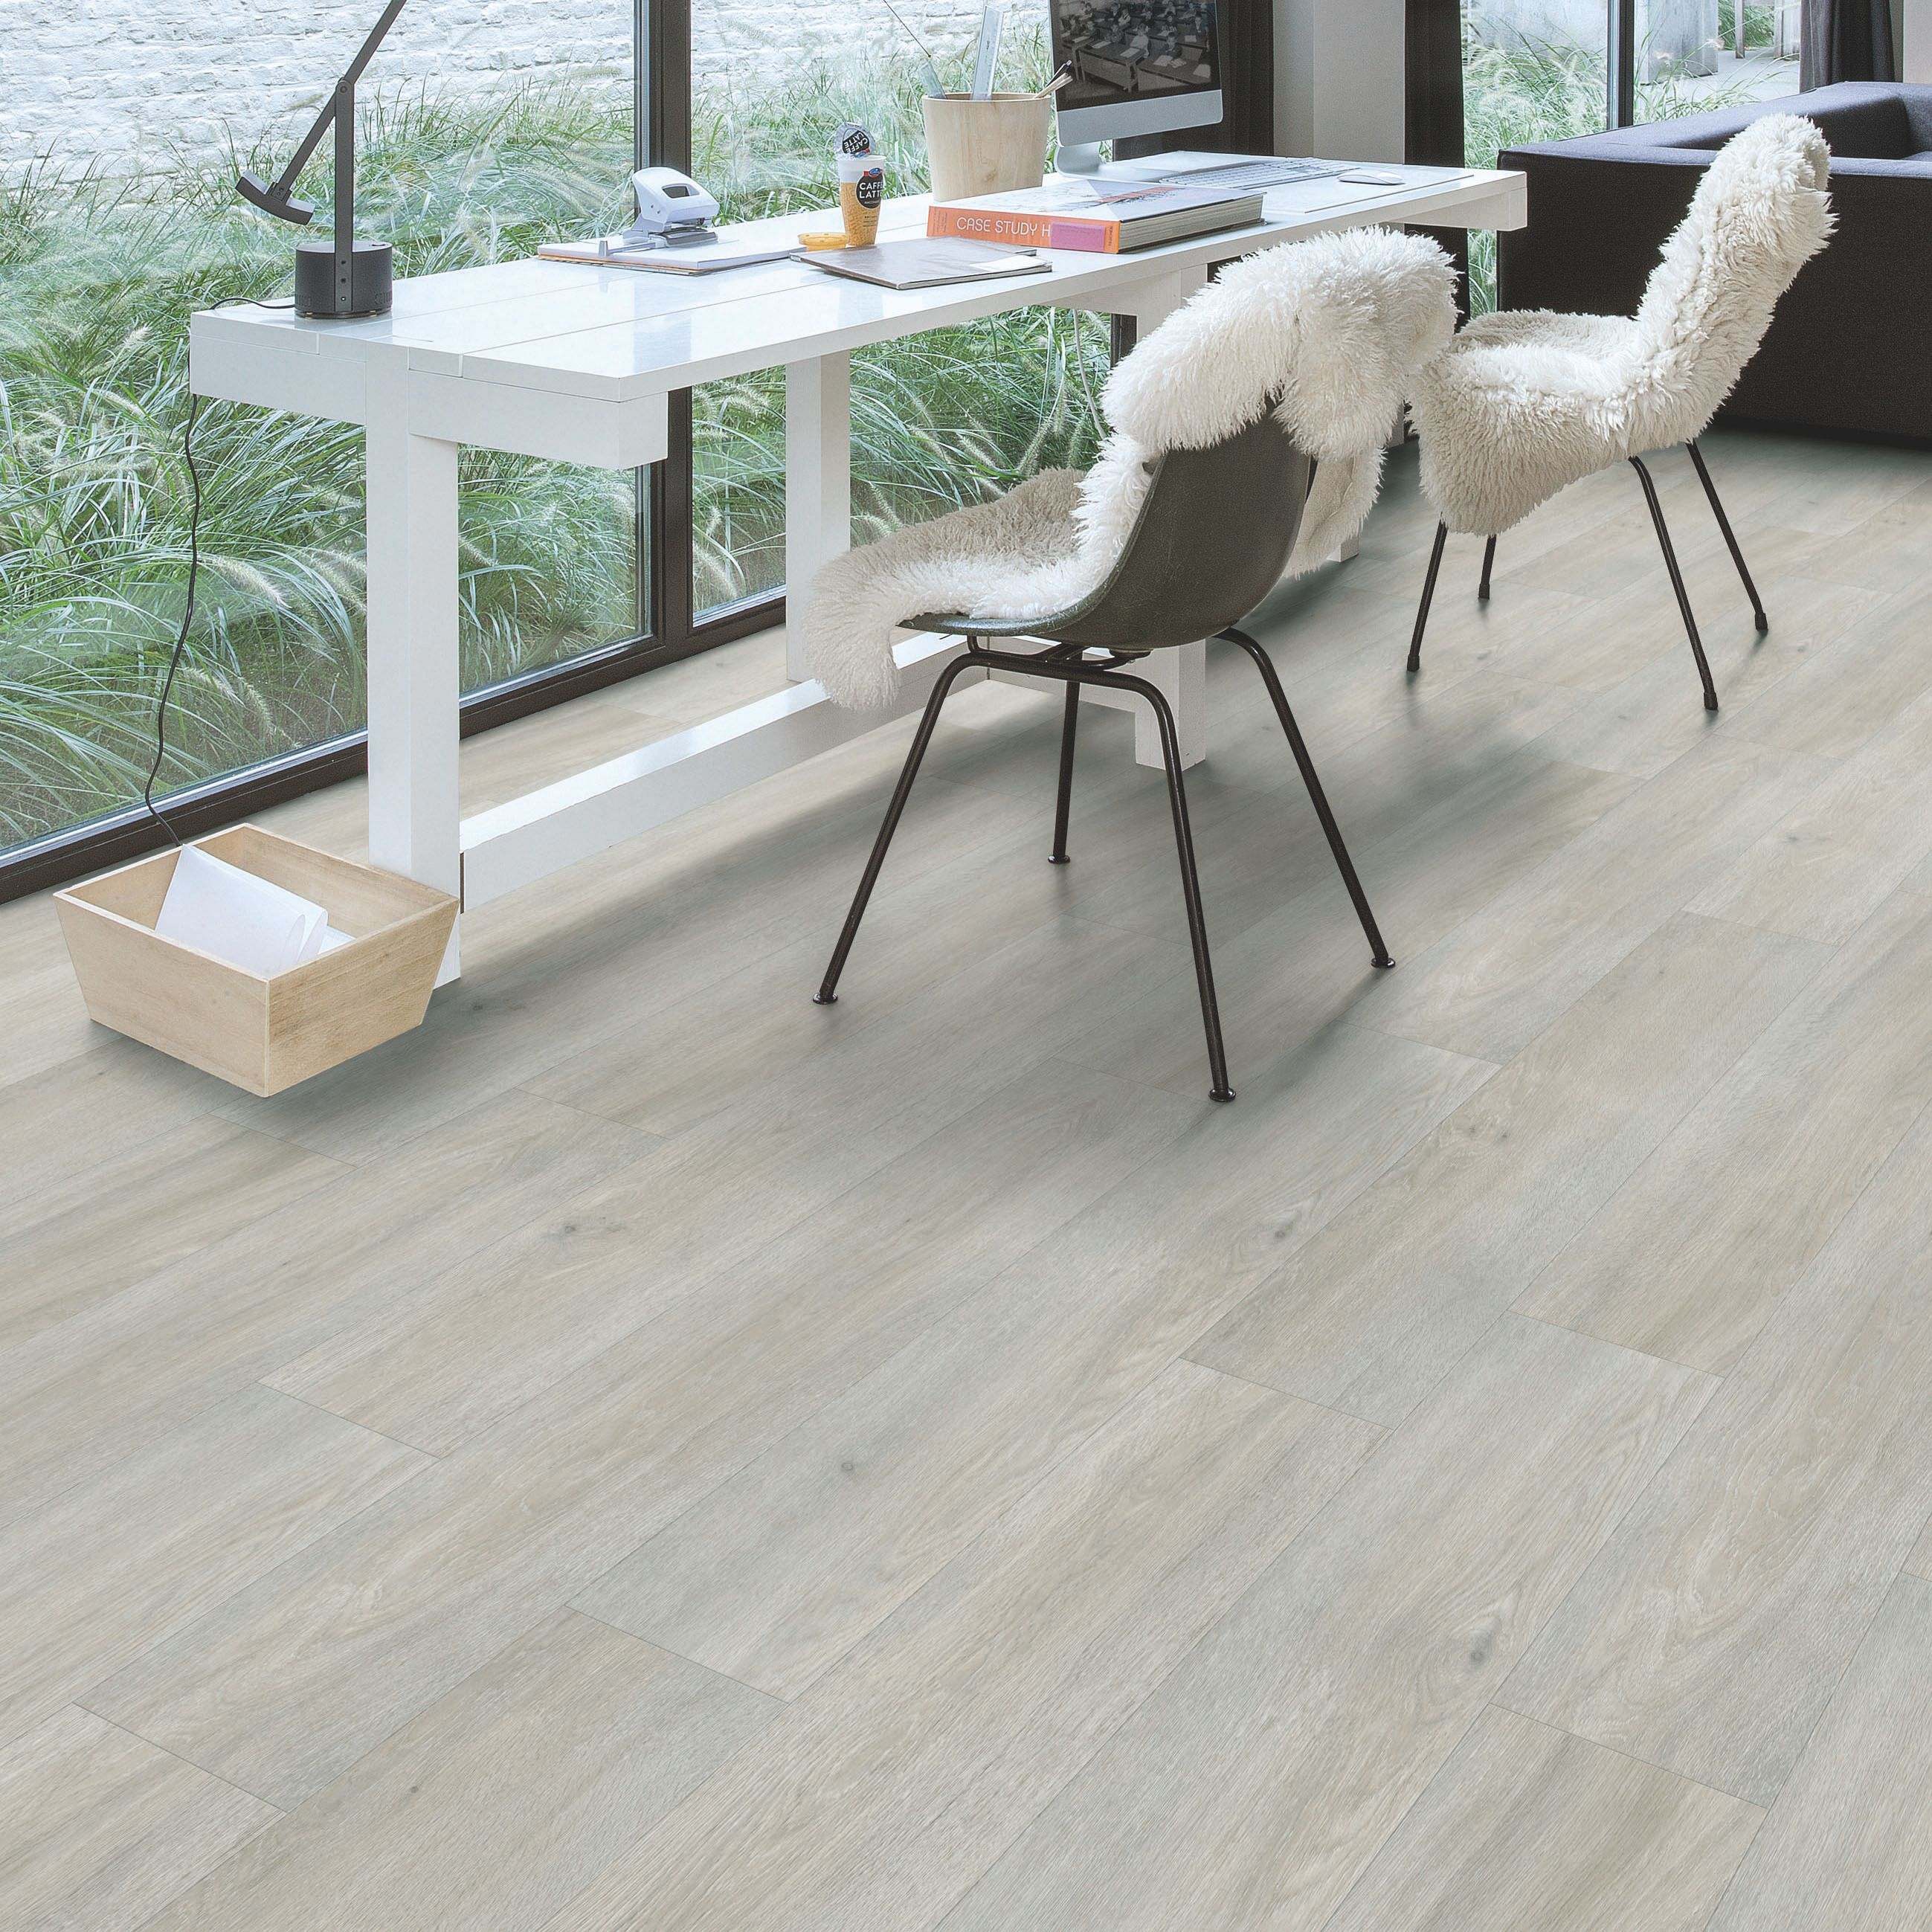 Quick Step Paso Light Grey Oak Effect Waterproof Luxury Vinyl Flooring Tile 2 105 M² Pack